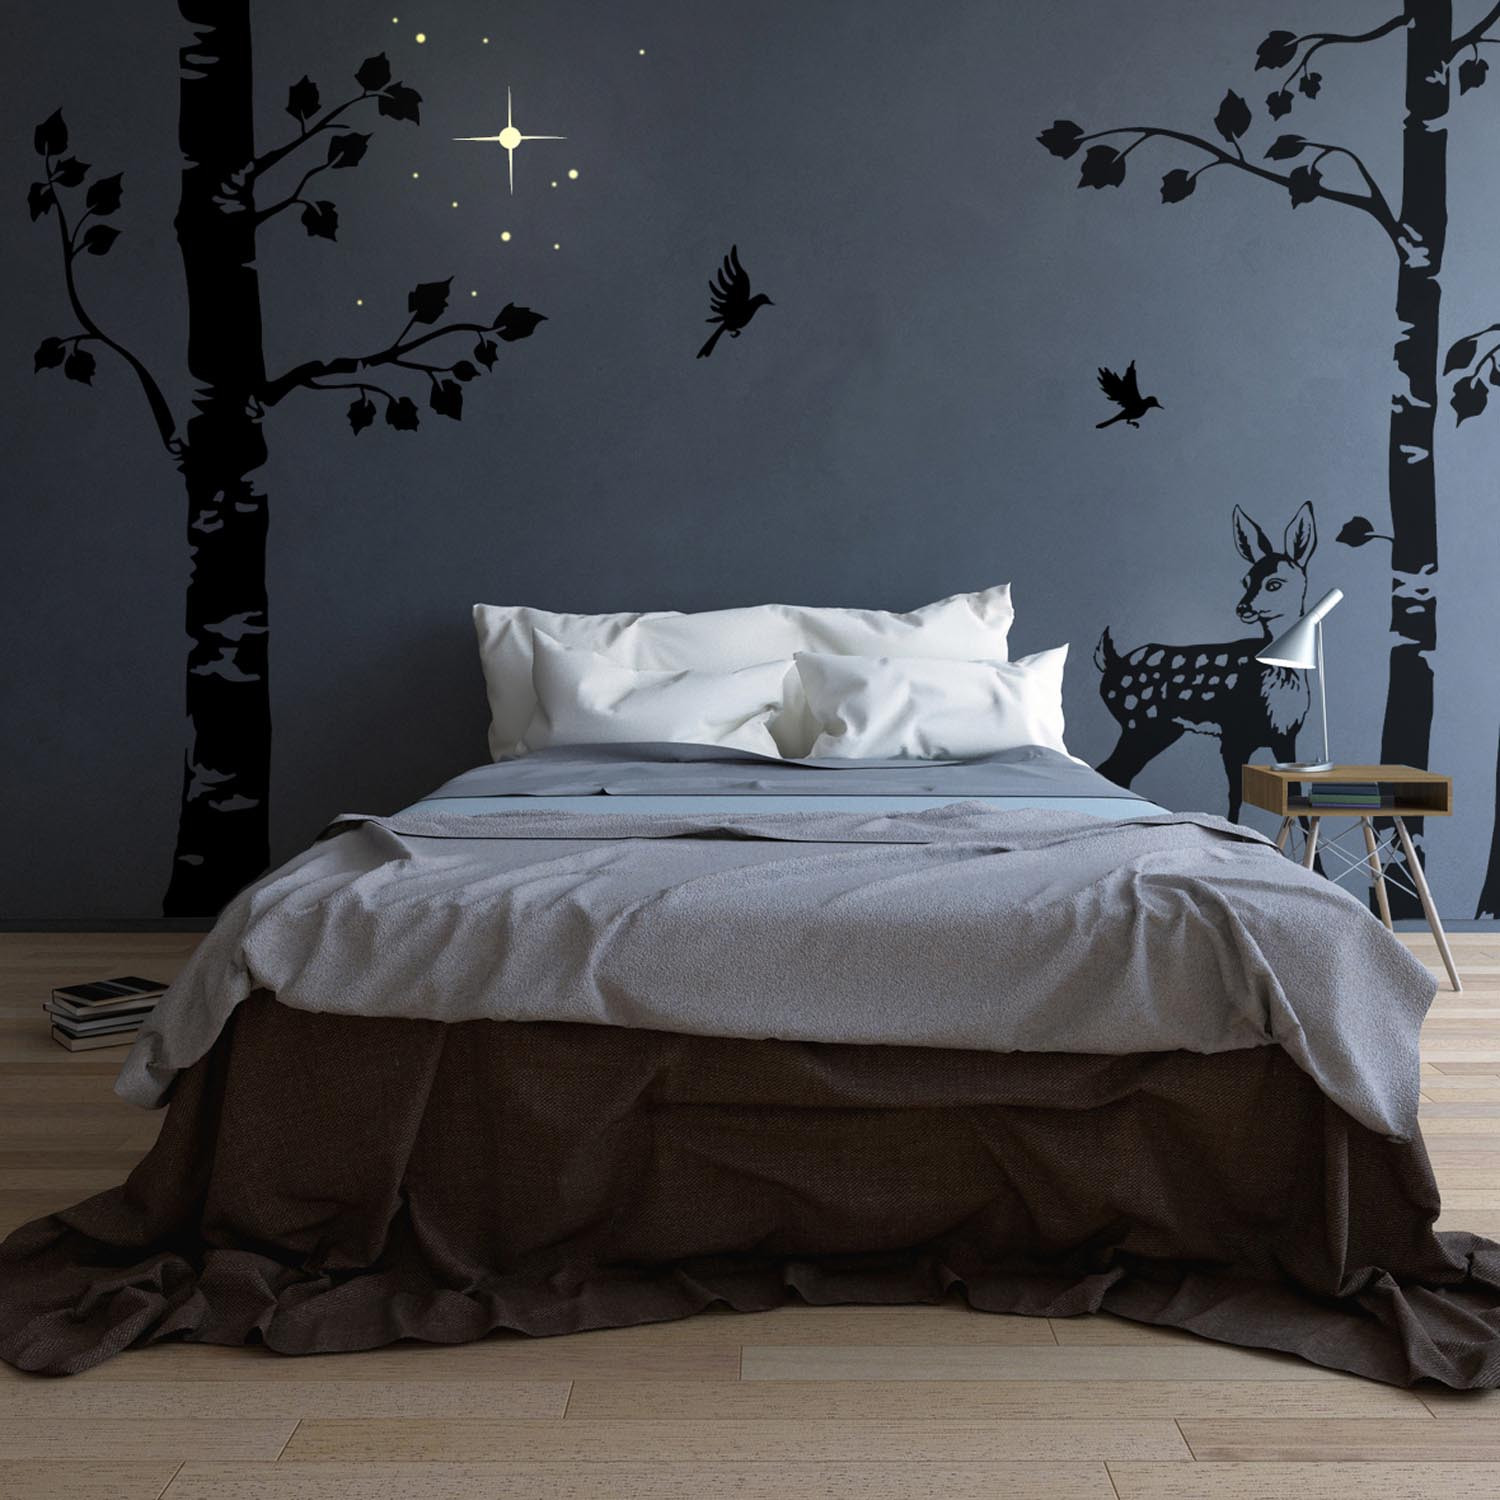 wandtattoo schlafzimmer rosa halbes schlafzimmer einrichten leuchte ikea bettw sche 135 x 200. Black Bedroom Furniture Sets. Home Design Ideas